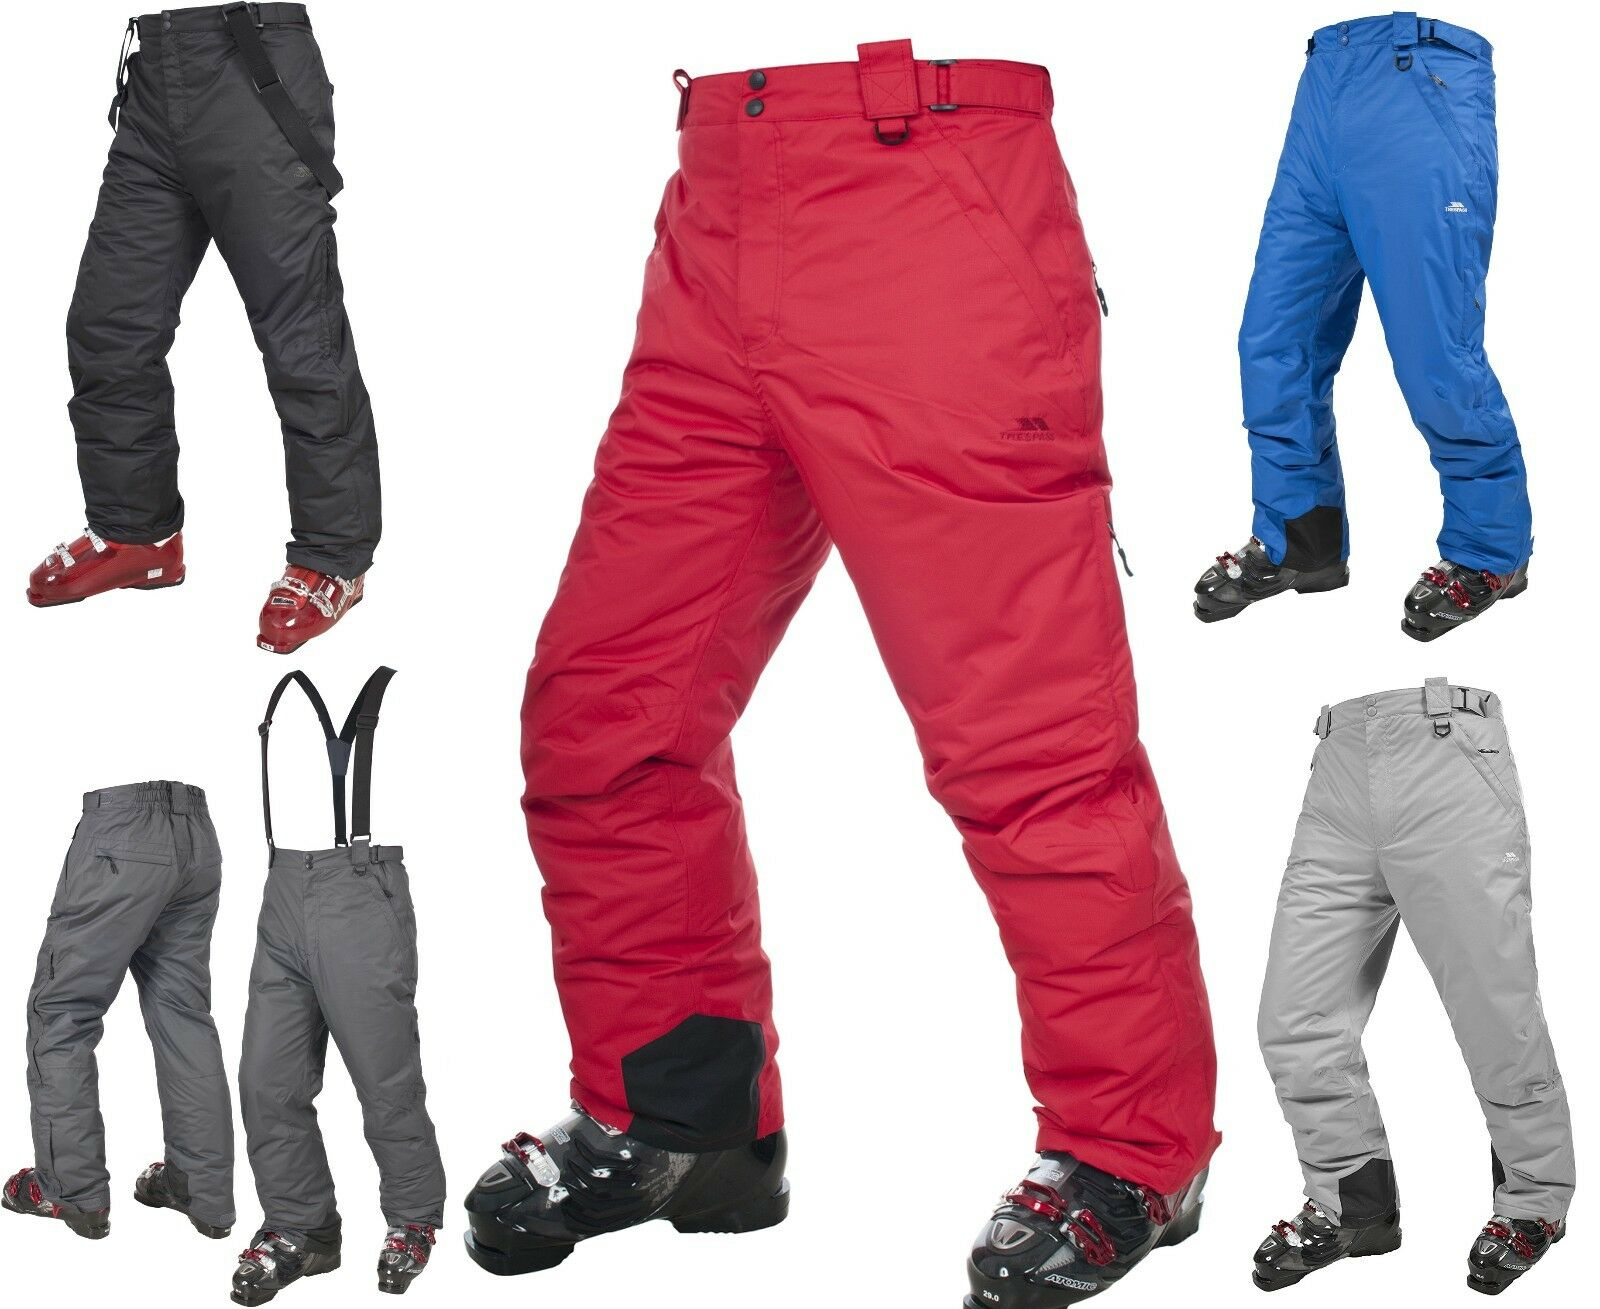 TRESPASS MEN'S BEZZY PredEKT LT INSULATED WATERPROOF 5000MM SKI  SNOW PANT  all goods are specials